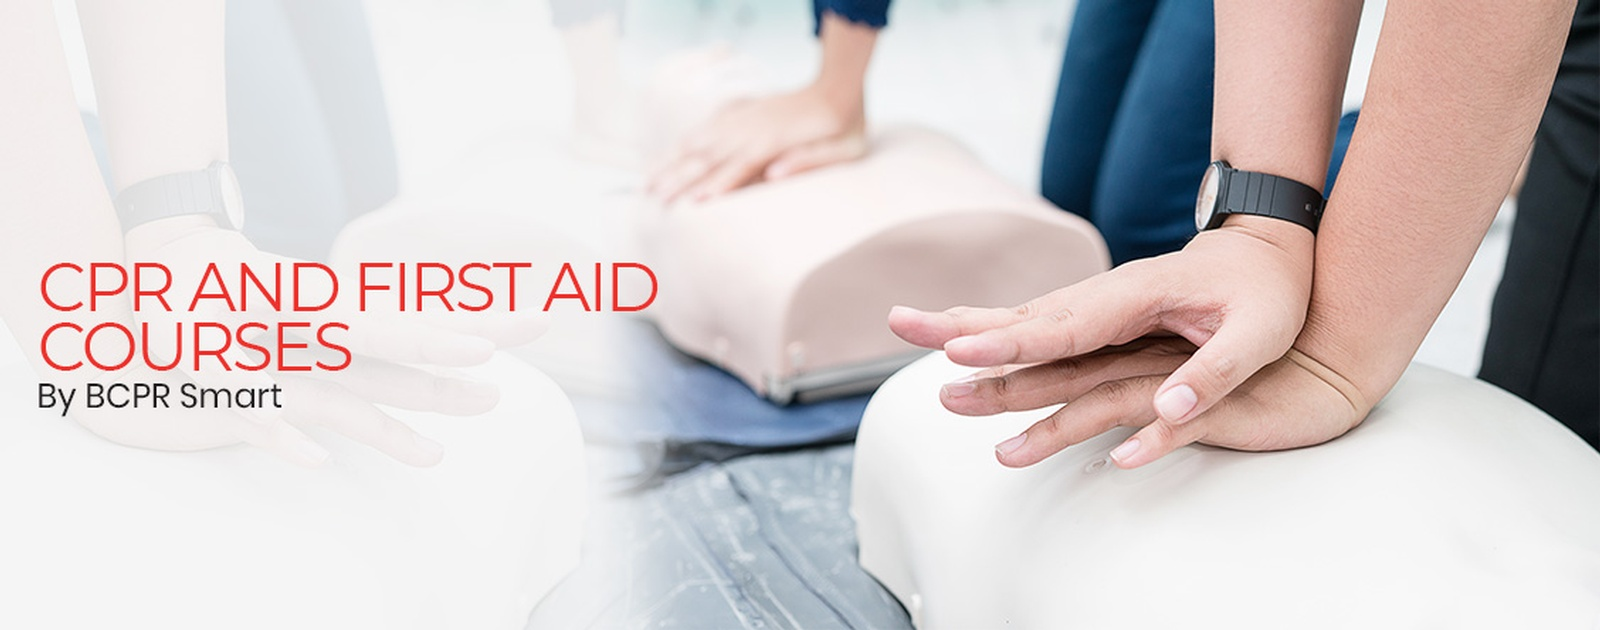 Canadian Red Cross First Aid Courses